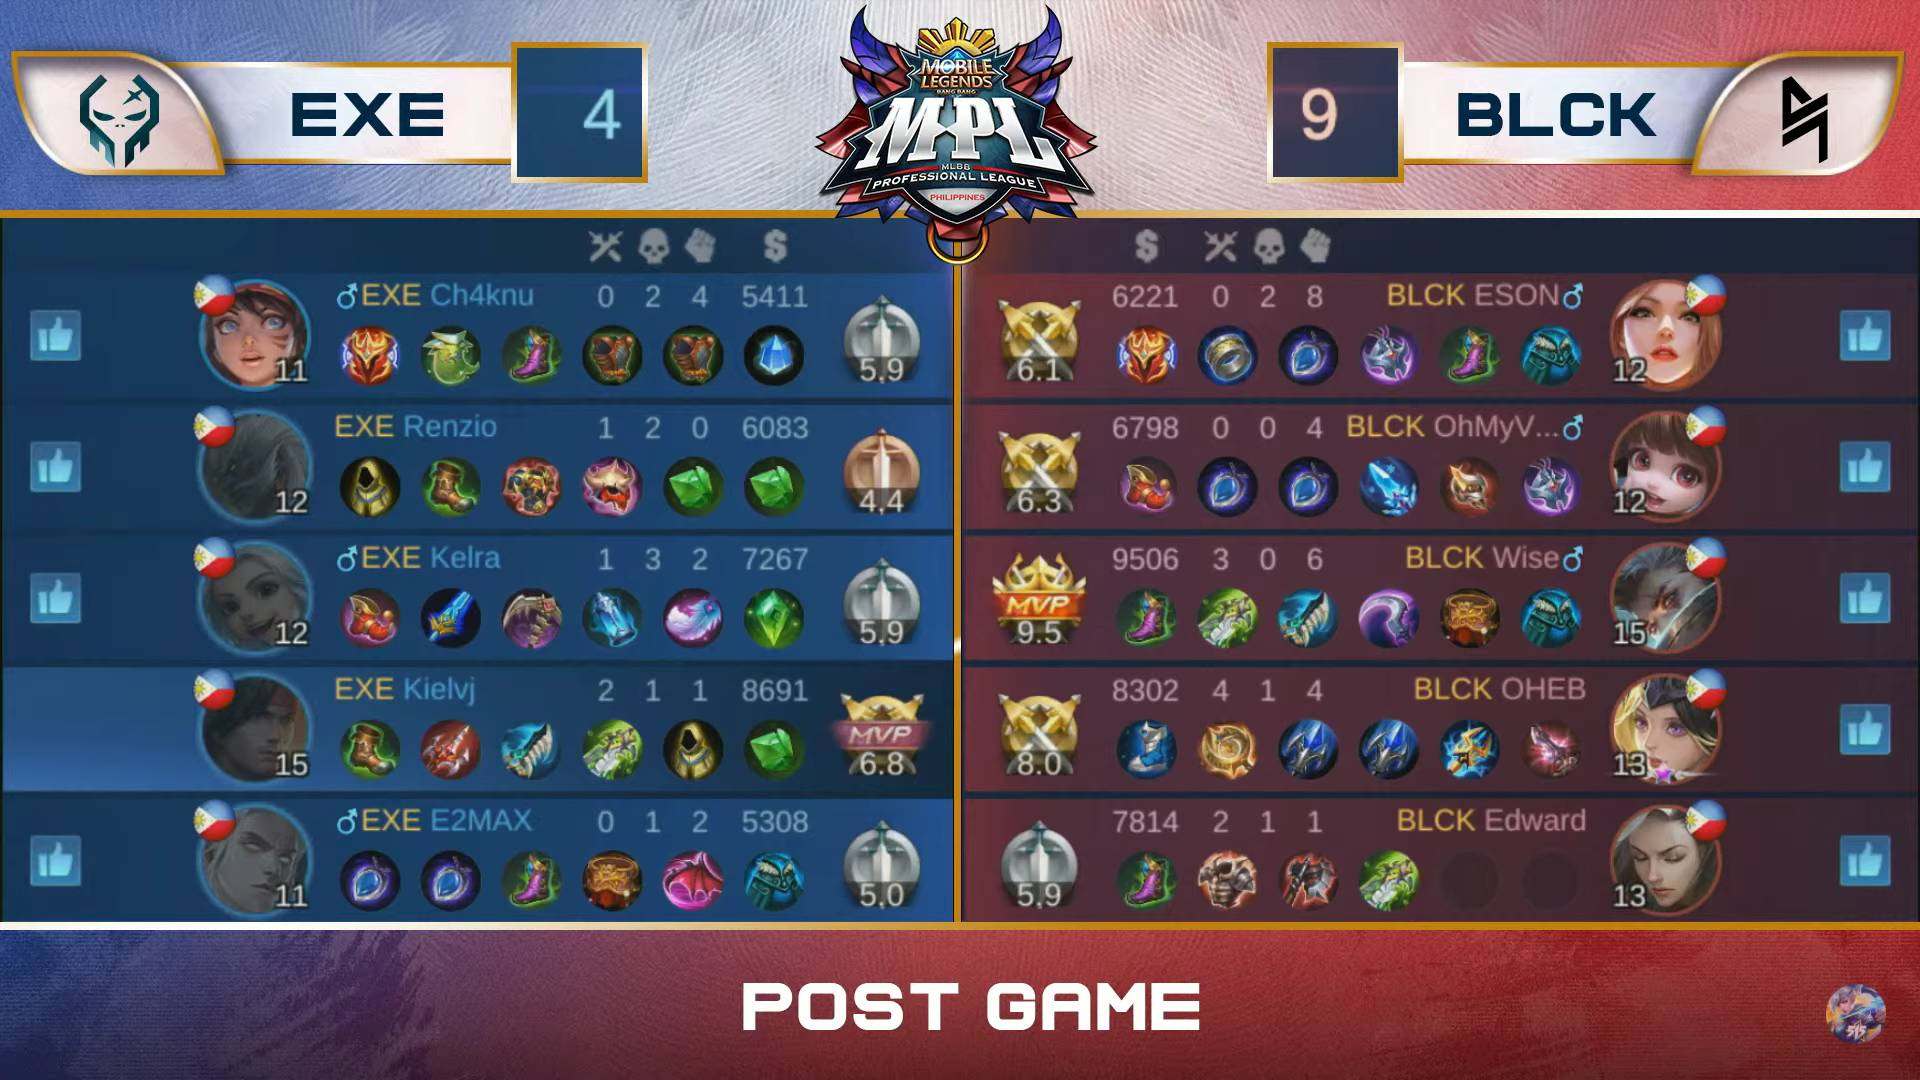 MPL-PH-Season-7-Blacklist-def-Execration-Game-1 Wise wipes out Execration in decider as Blacklist bounces back in MPL PH ESports Mobile Legends MPL-PH News  - philippine sports news